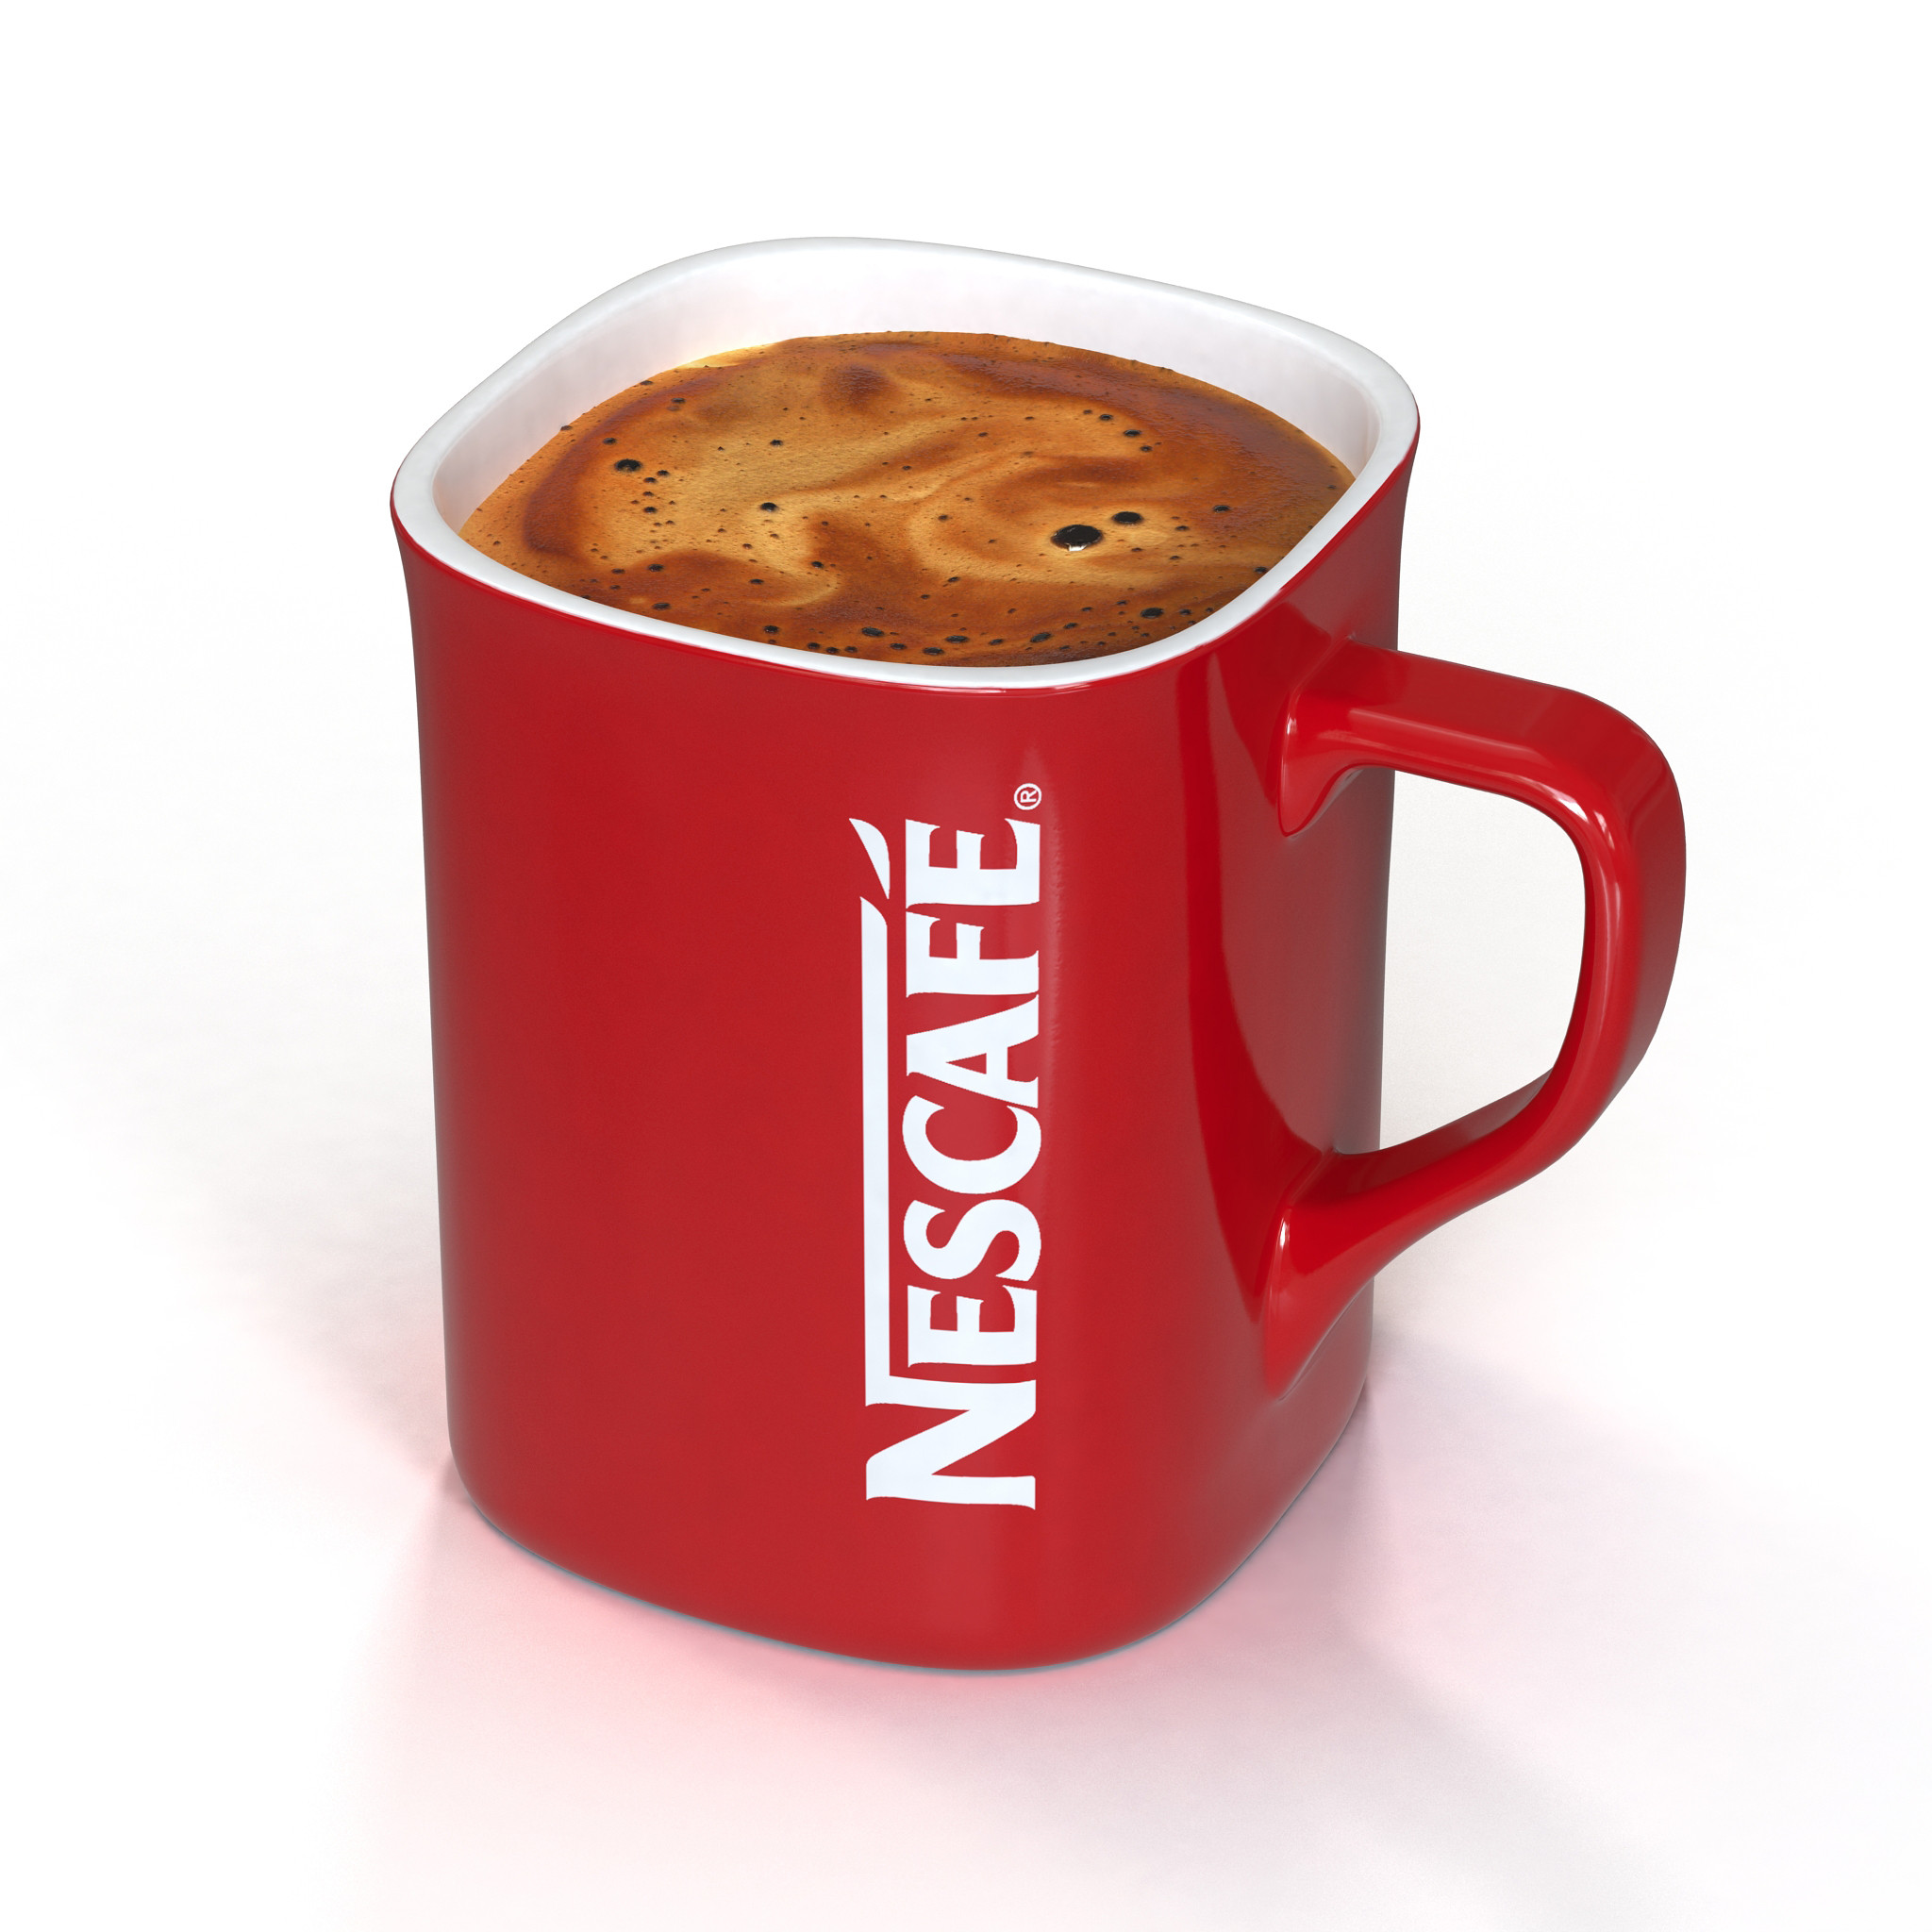 nescafe and international trade essay The general topic of this dissertation is international trade  the overarching  theme of all three essays of my thesis is how these differences.